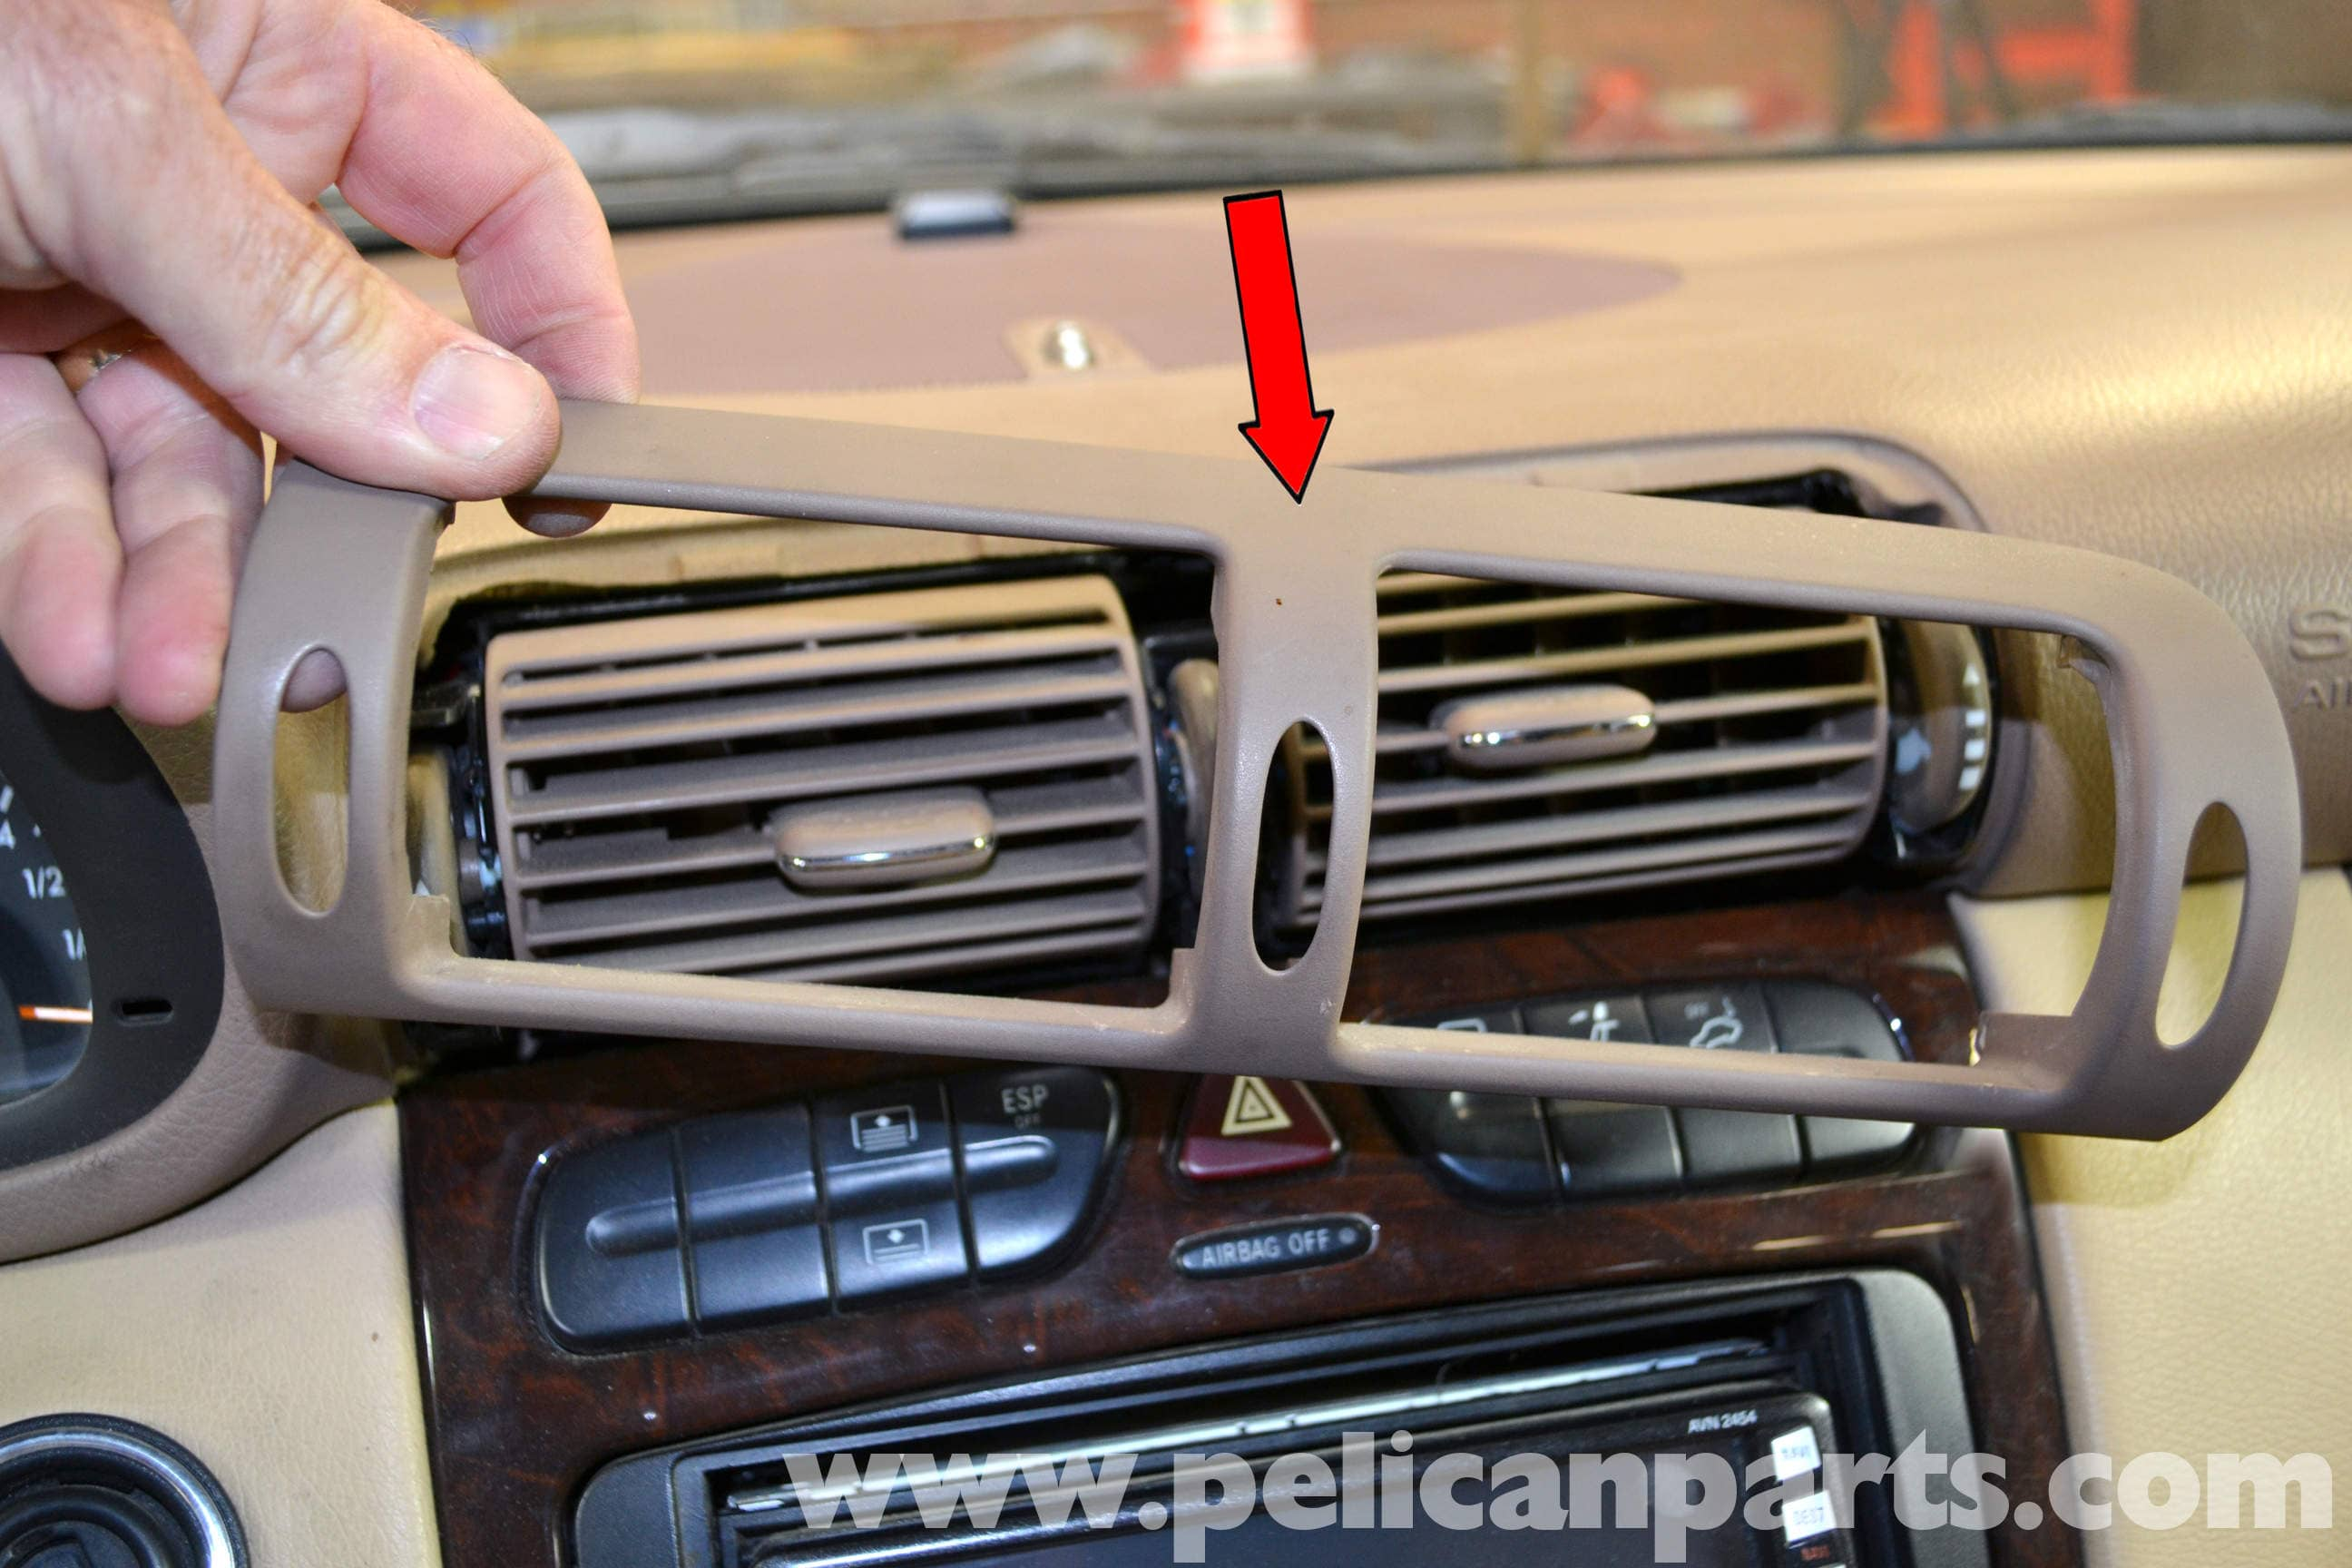 Mercedes-Benz W203 Upper Center Console Removal - (2001-2007